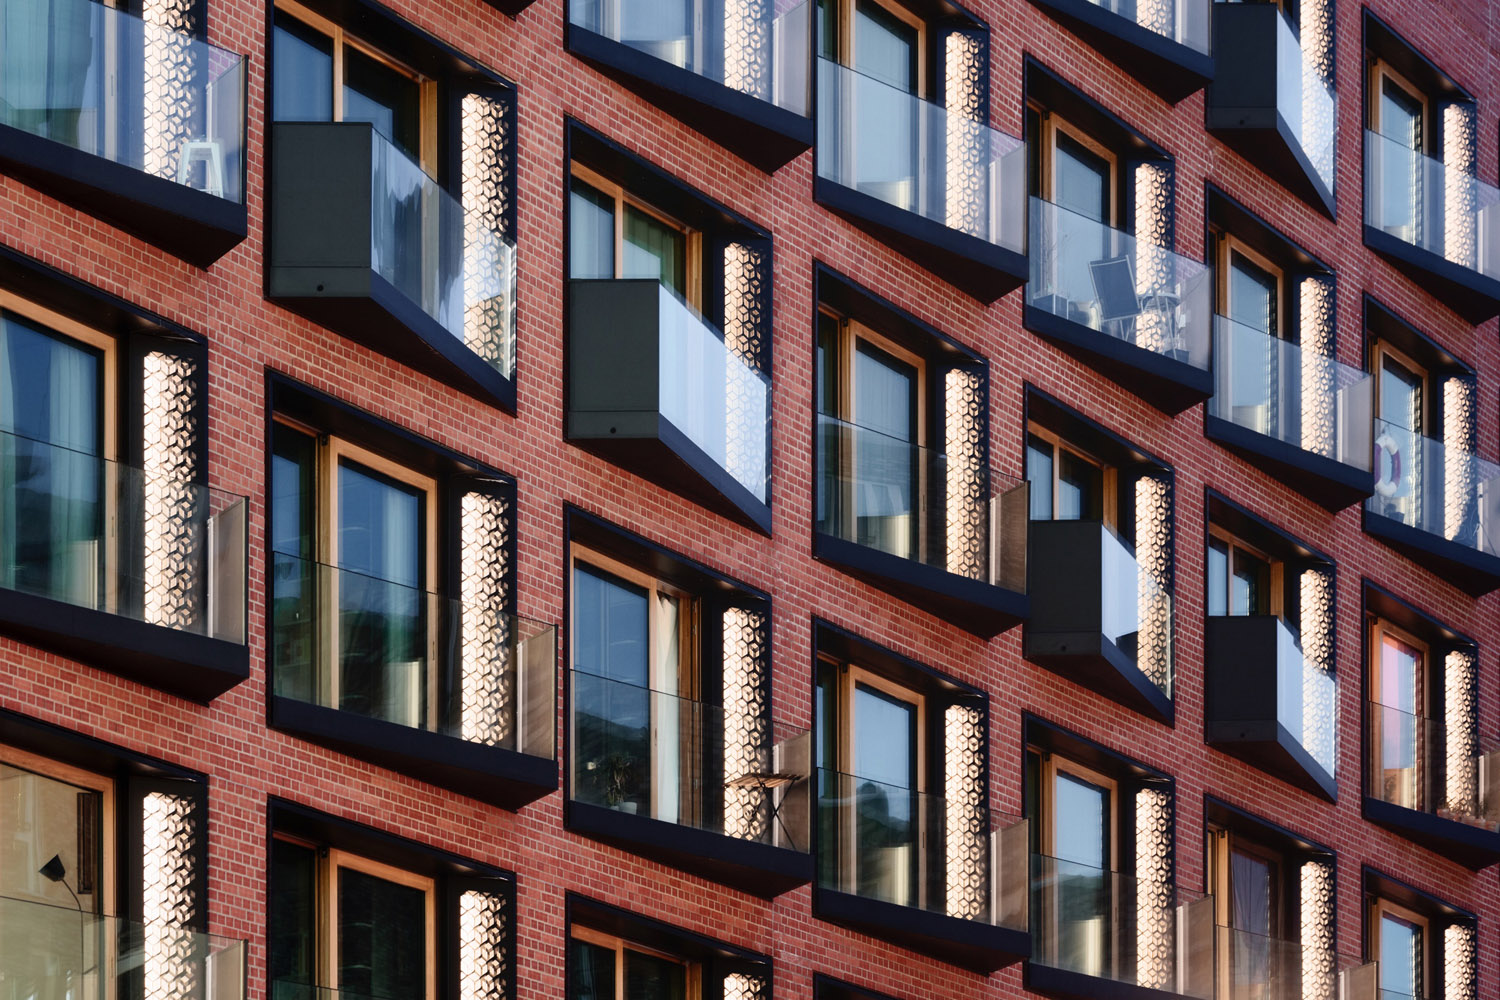 Specially developed HafenCity windows with fixed solar screening Marcus Bredt